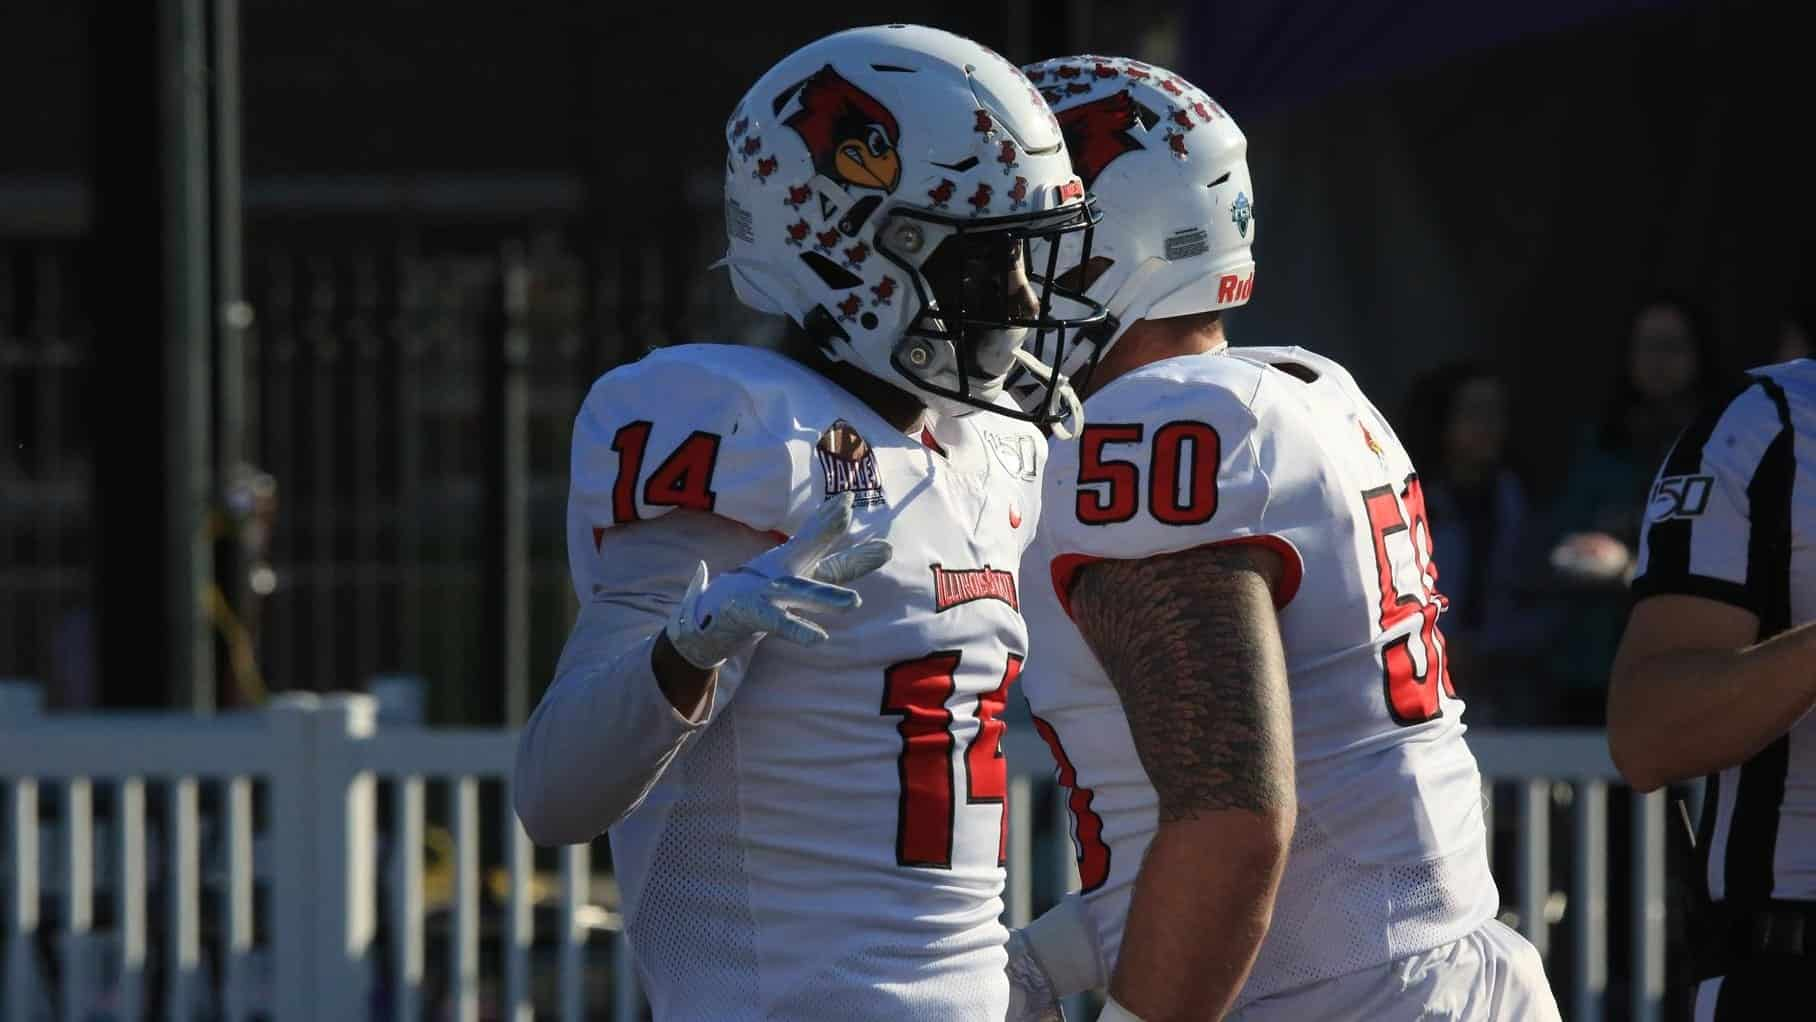 Illinois State's Luther Kirk is a versatile safety and NFL Draft sleeper